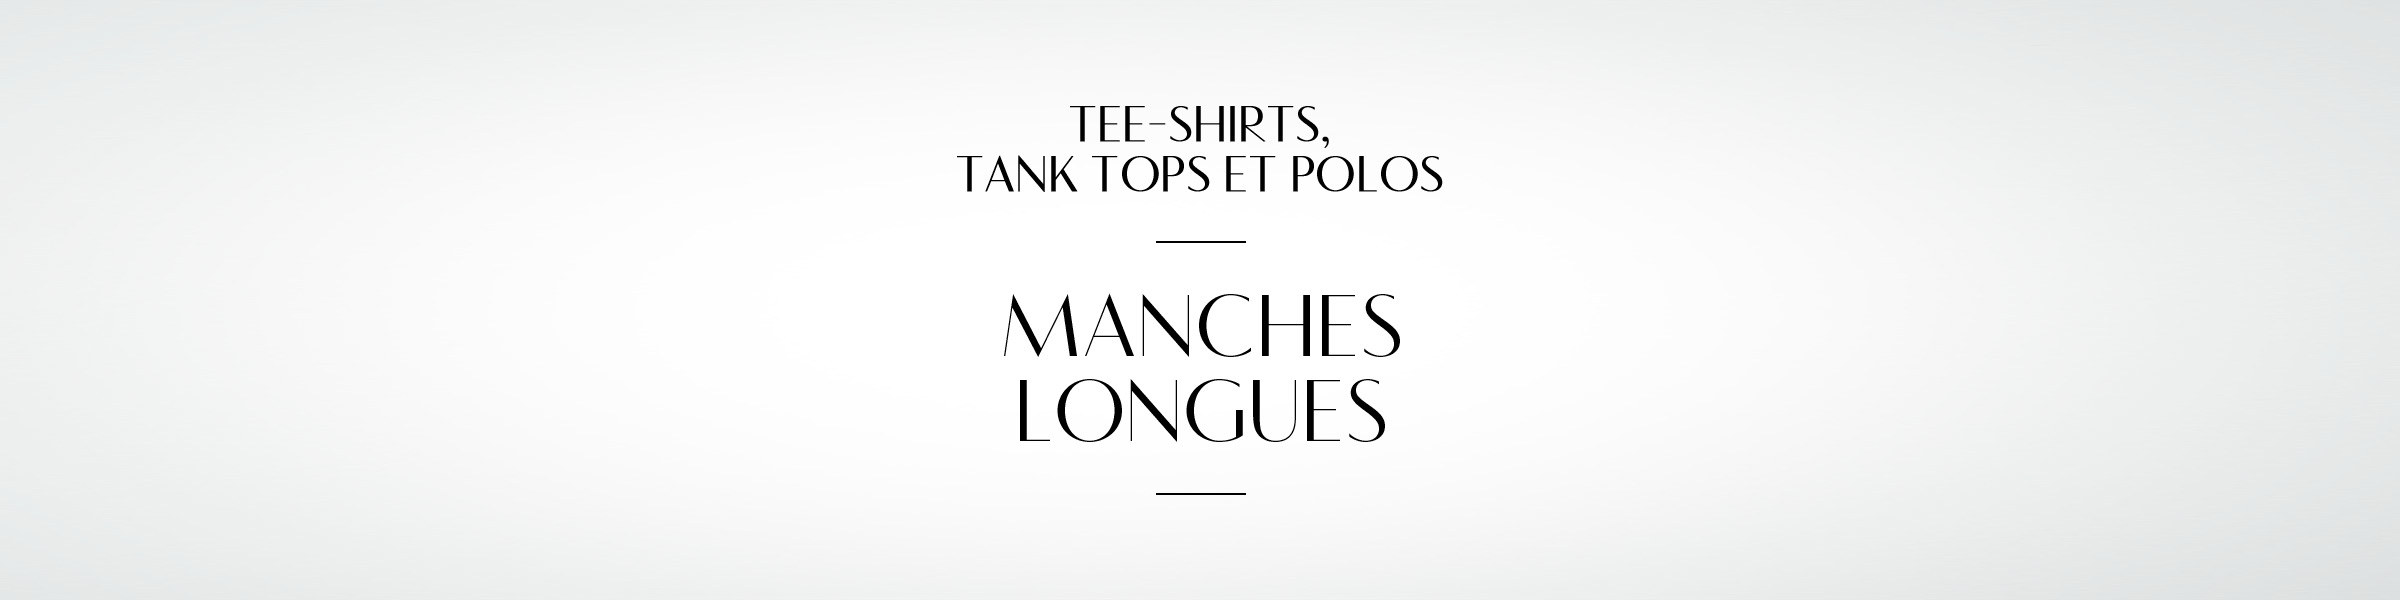 A17-TBGEN-HOMME_Tee-shirts, tank tops et polos_Manches longues.psd